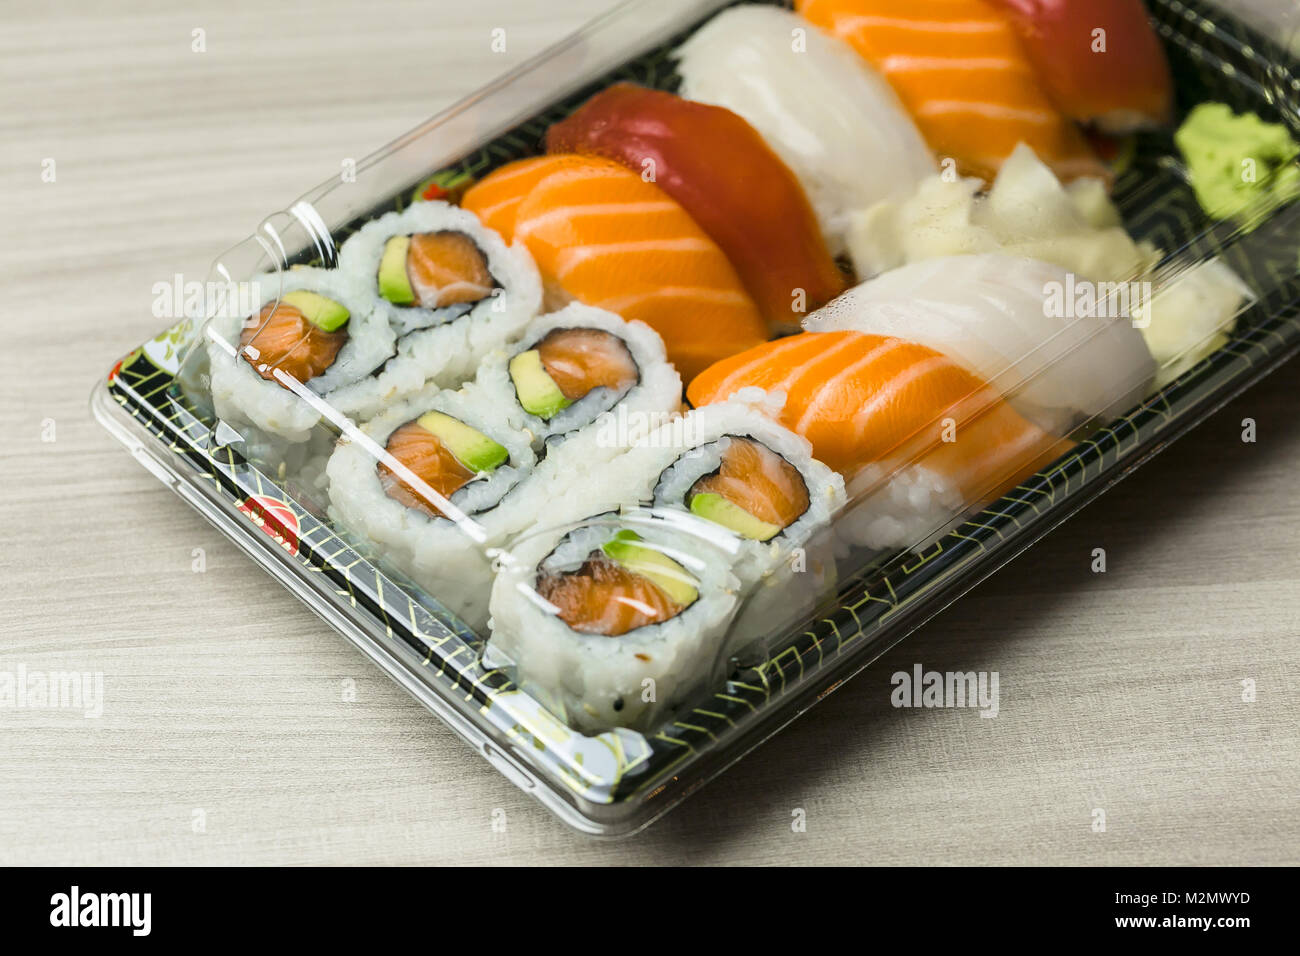 Takeaway food plastic containers for Sushi, Sashimi and Futomaki rolls.  Fresh made Sushi set with salmon, prawns, - Stock Image